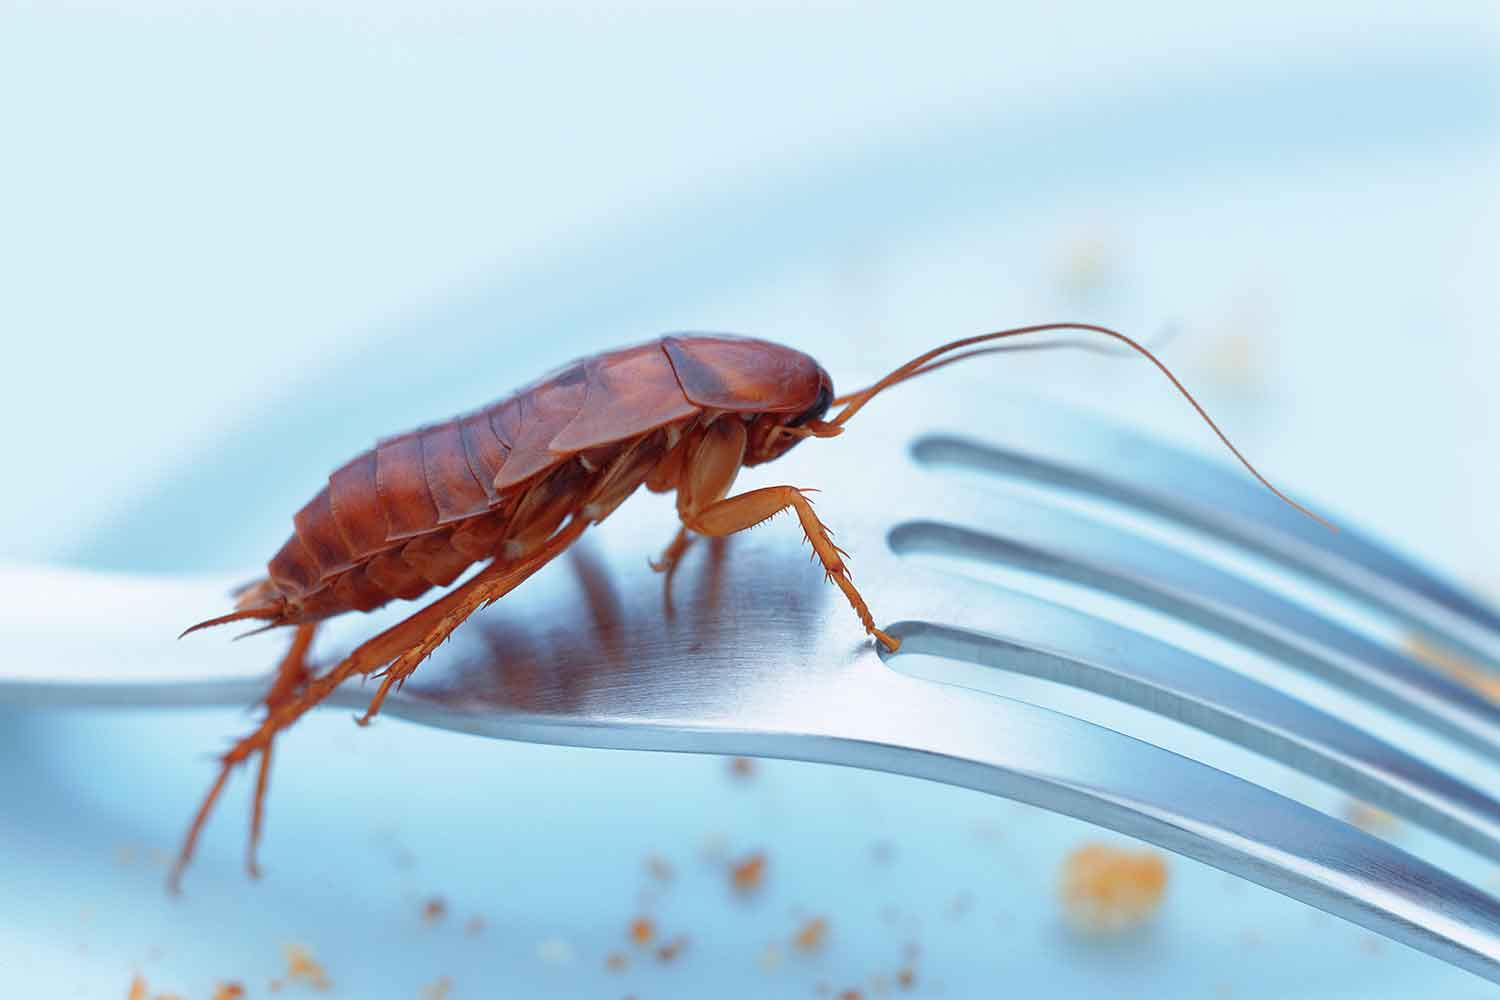 How to get rid of pests in your kitchen | Better Homes and Gardens